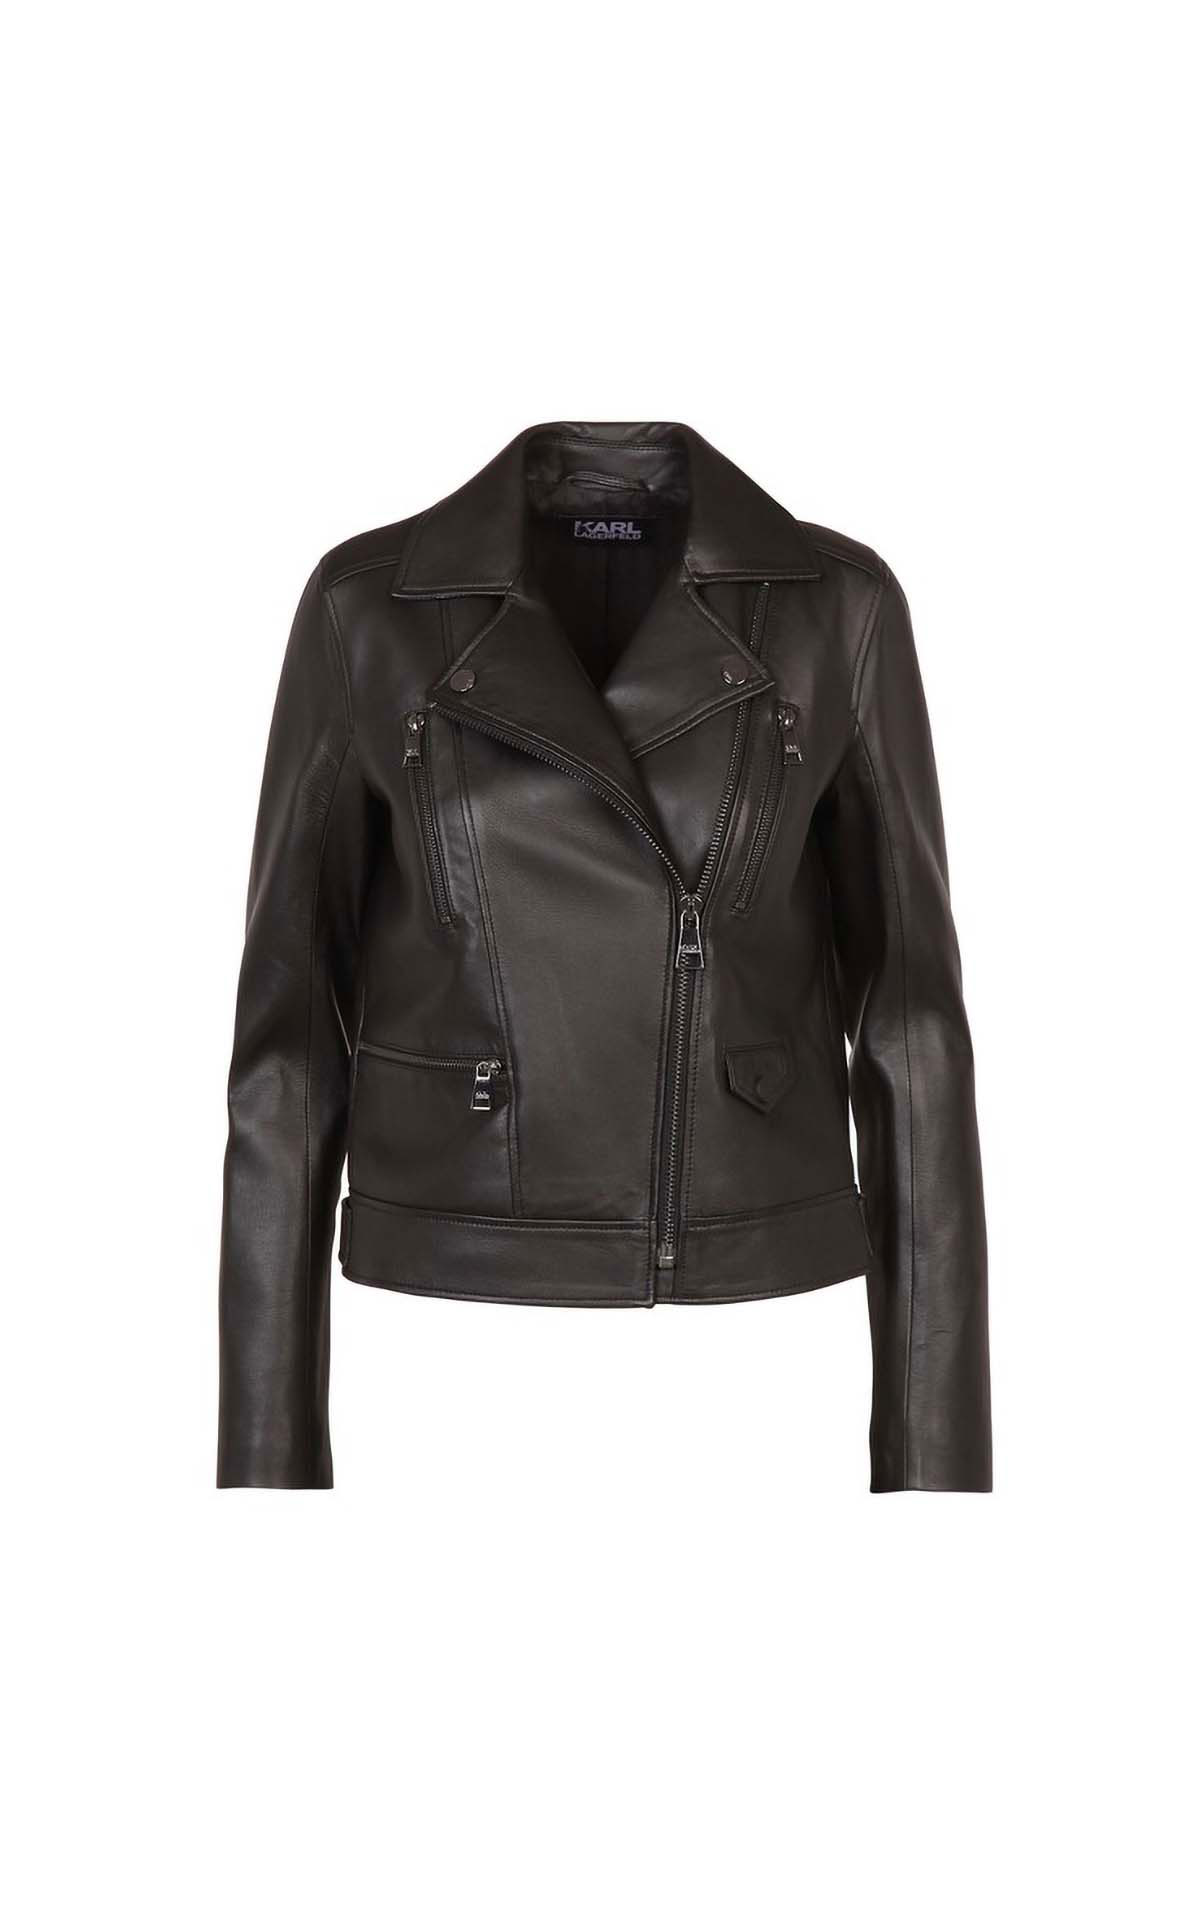 Karl Lagerfeld Ikonik odina biker jacket at The Bicester Village Shopping Collection